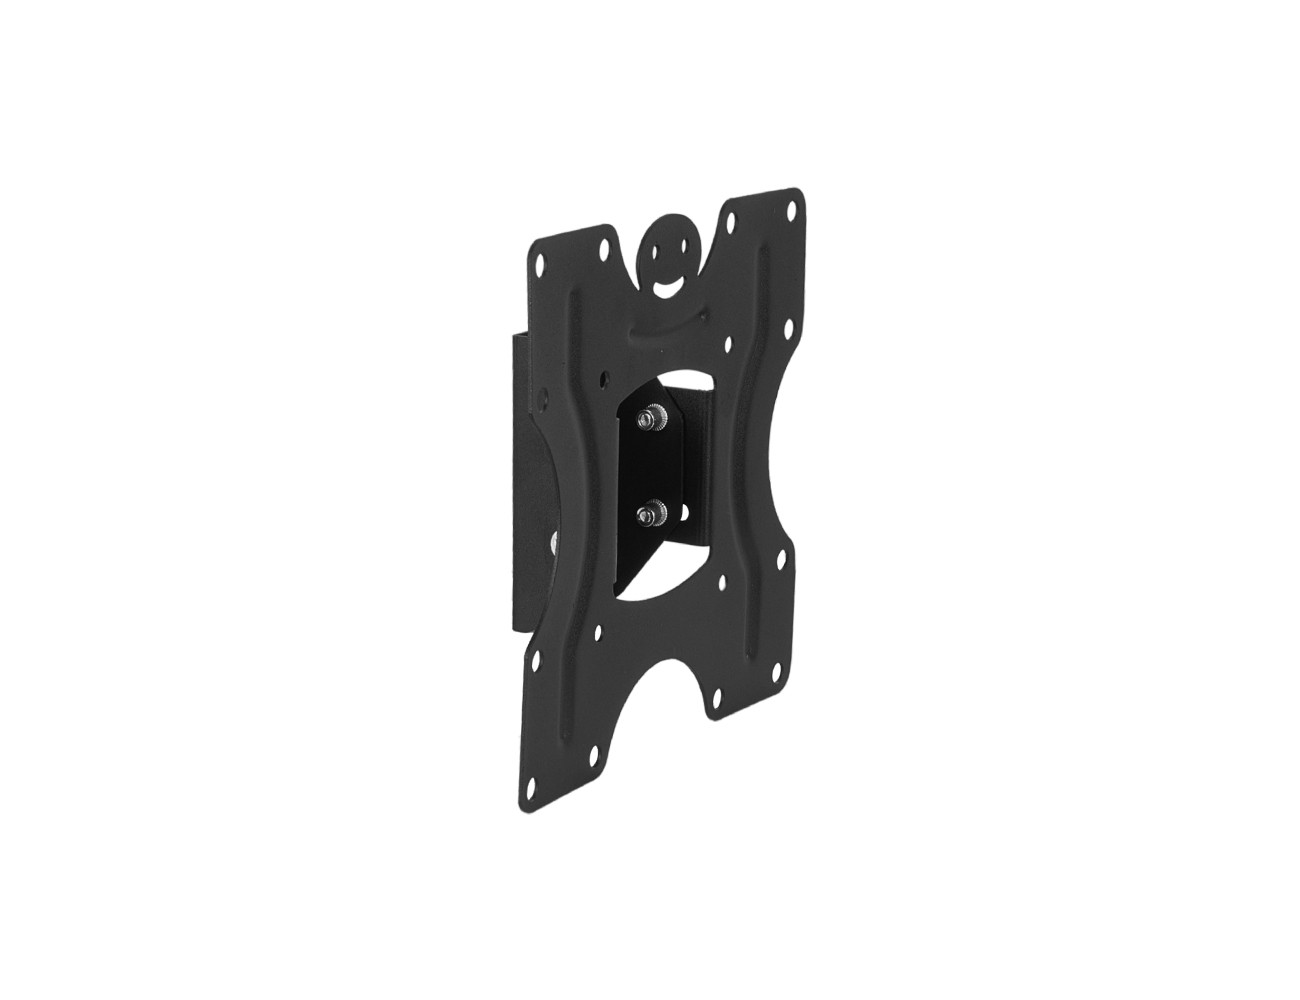 Tilted Wall Mount WMB-4021N